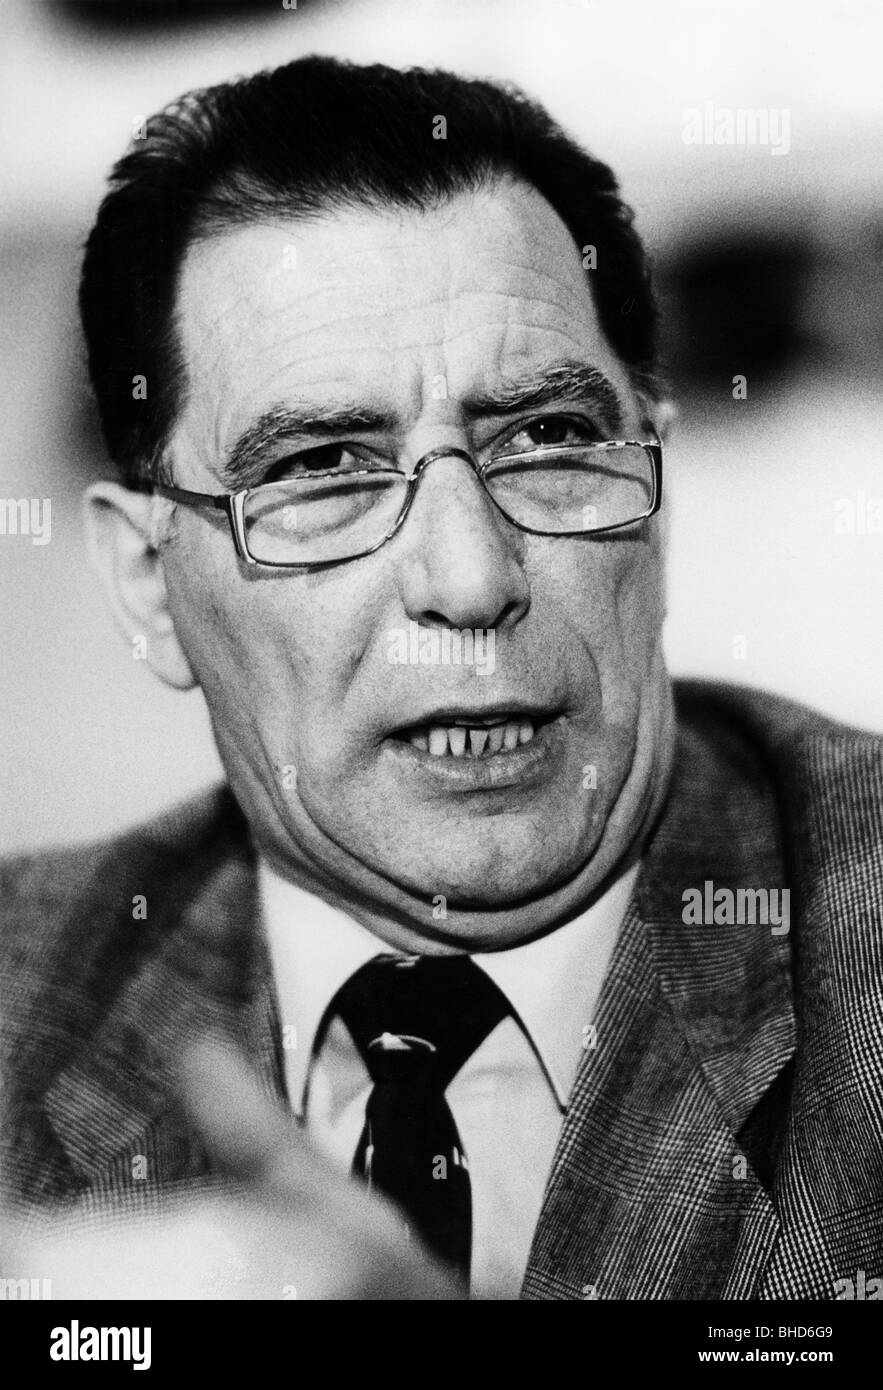 Geuenich, Michael, member of the German Confederation of Trade Unions, portrait, 1985, Additional-Rights-Clearances - Stock Image